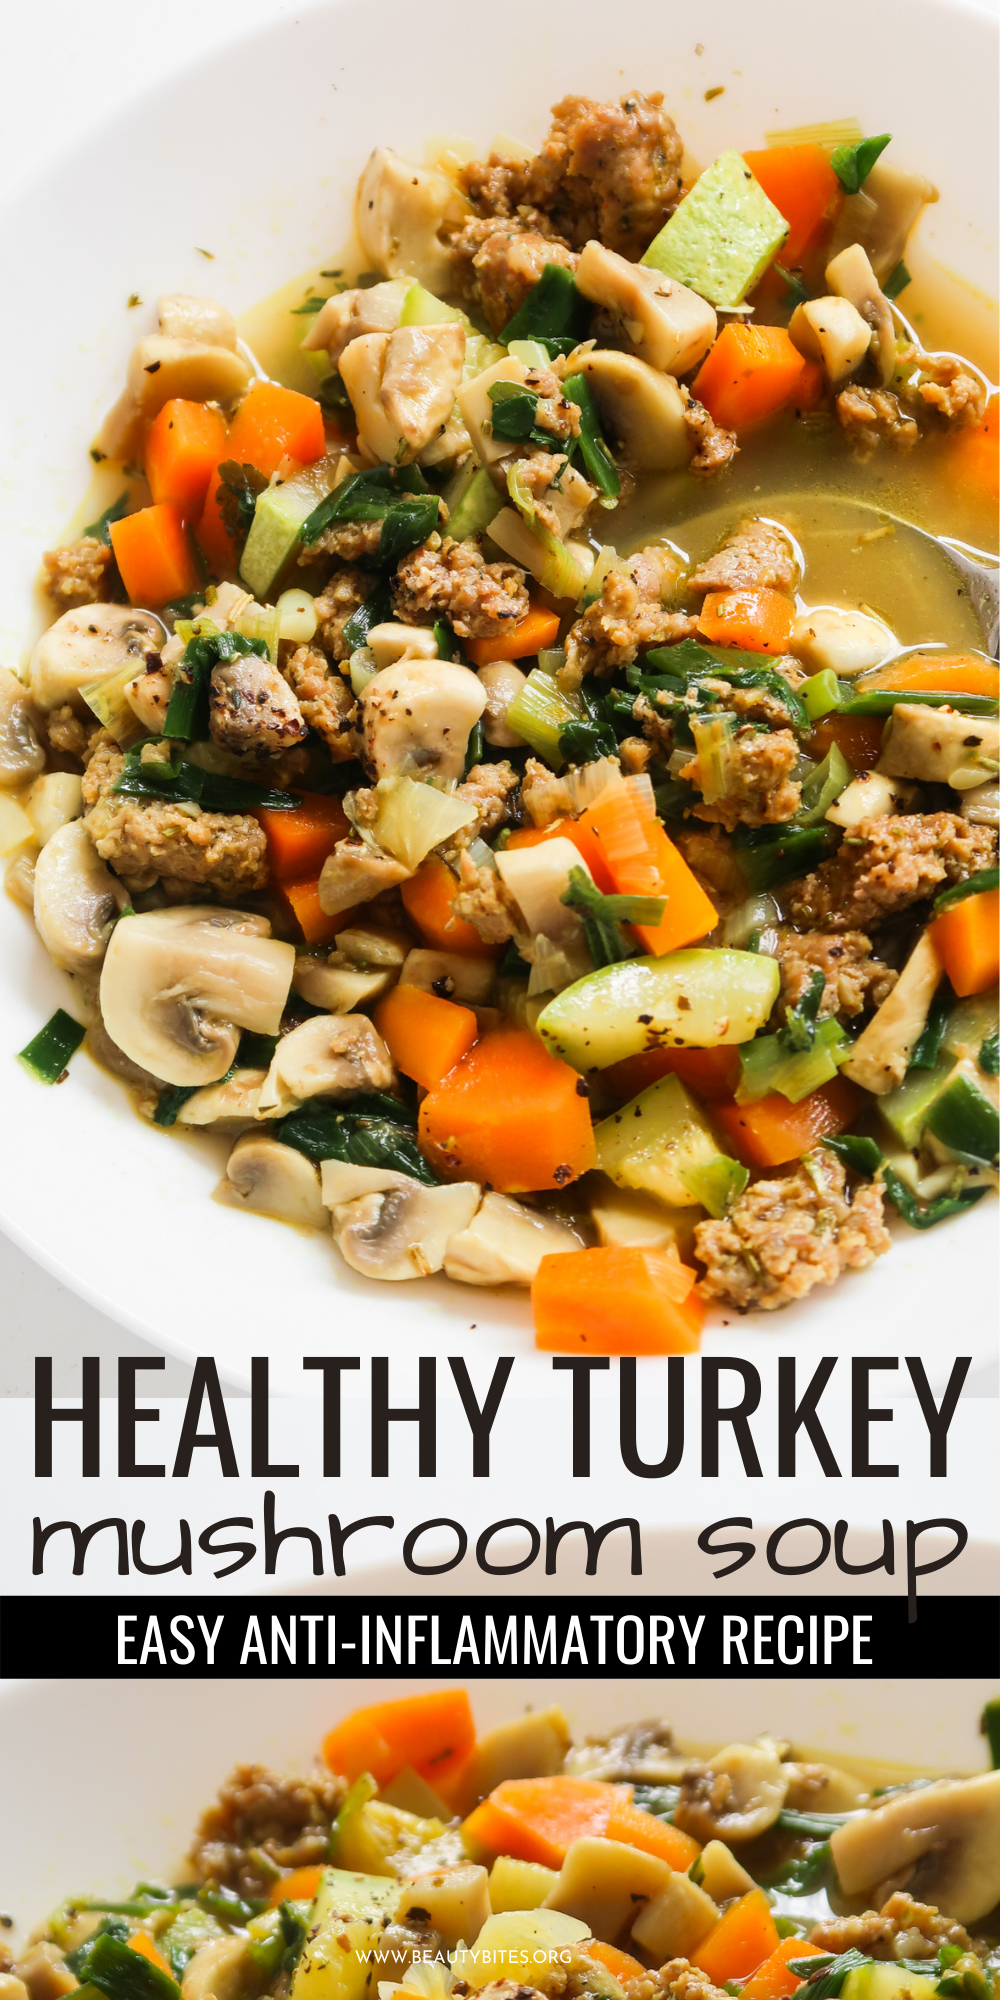 If you're looking for simple and delicious anti-inflammatory recipes, get the ingredients for this 20-minute healthy soup recipe and make this healing ground turkey mushroom soup!